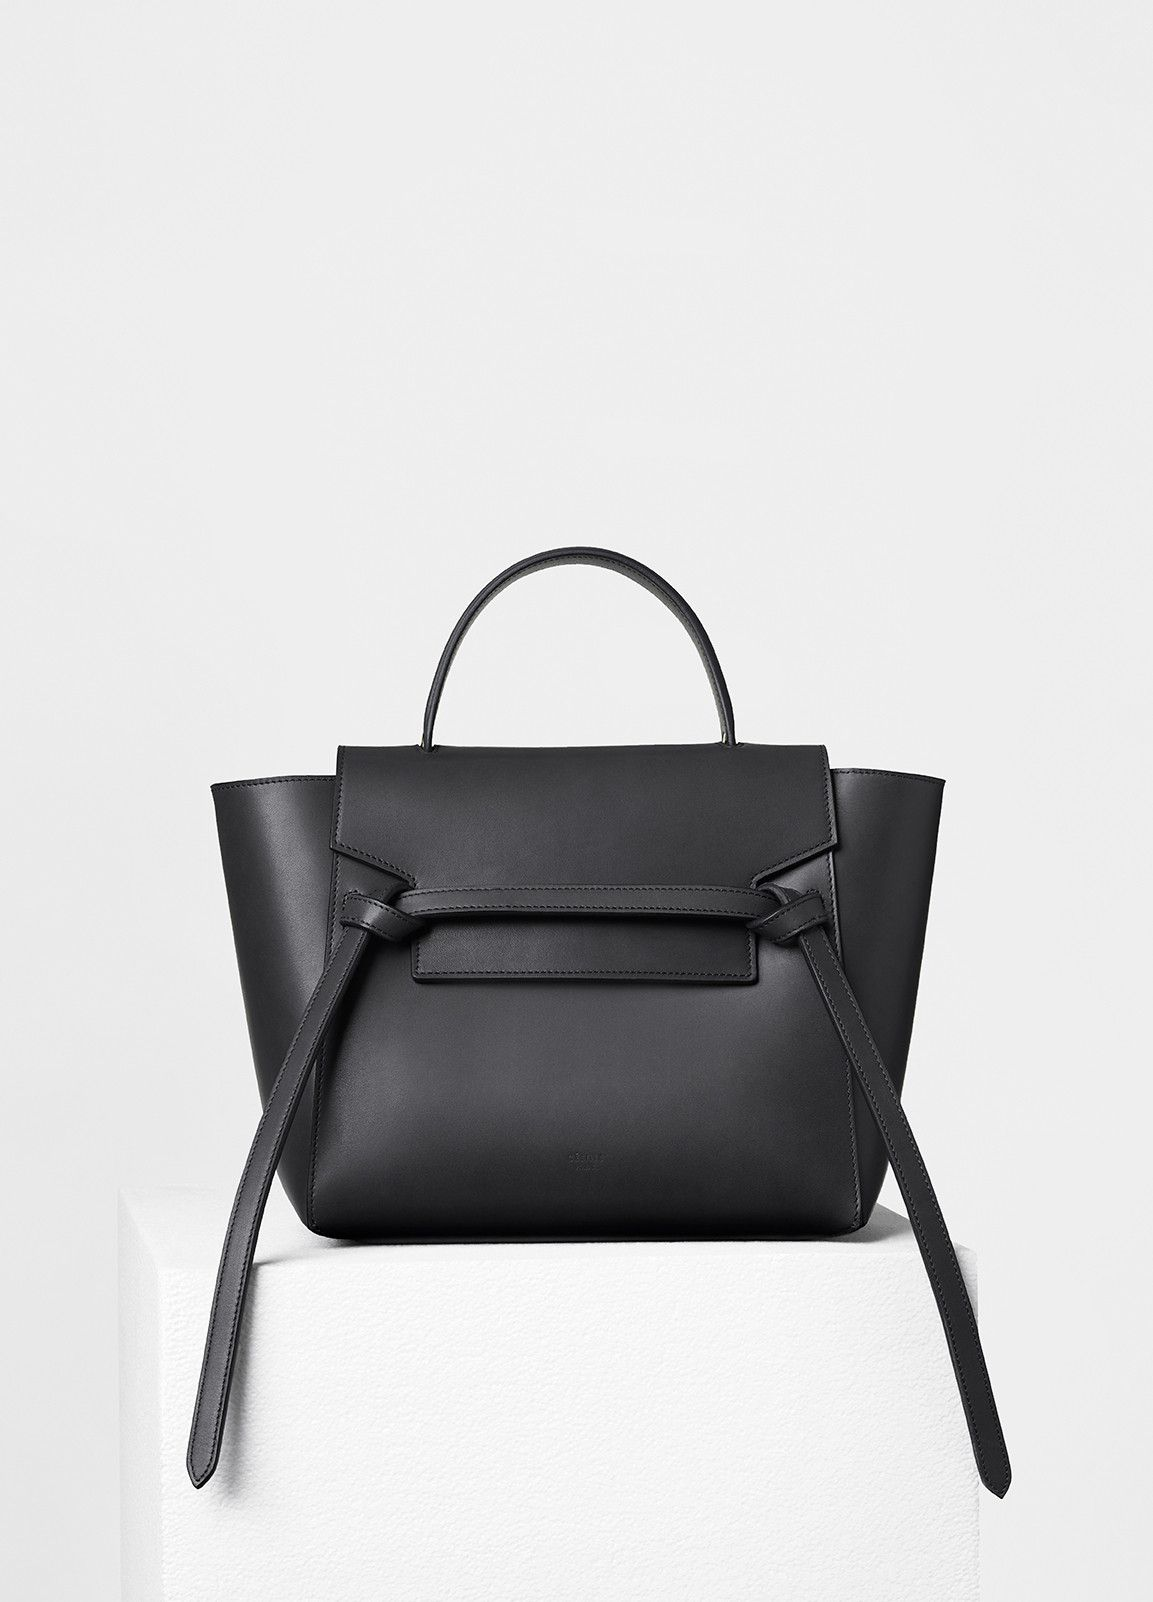 94ba0d7c4b53 Micro Belt Handbag in Grained Calfskin - Céline